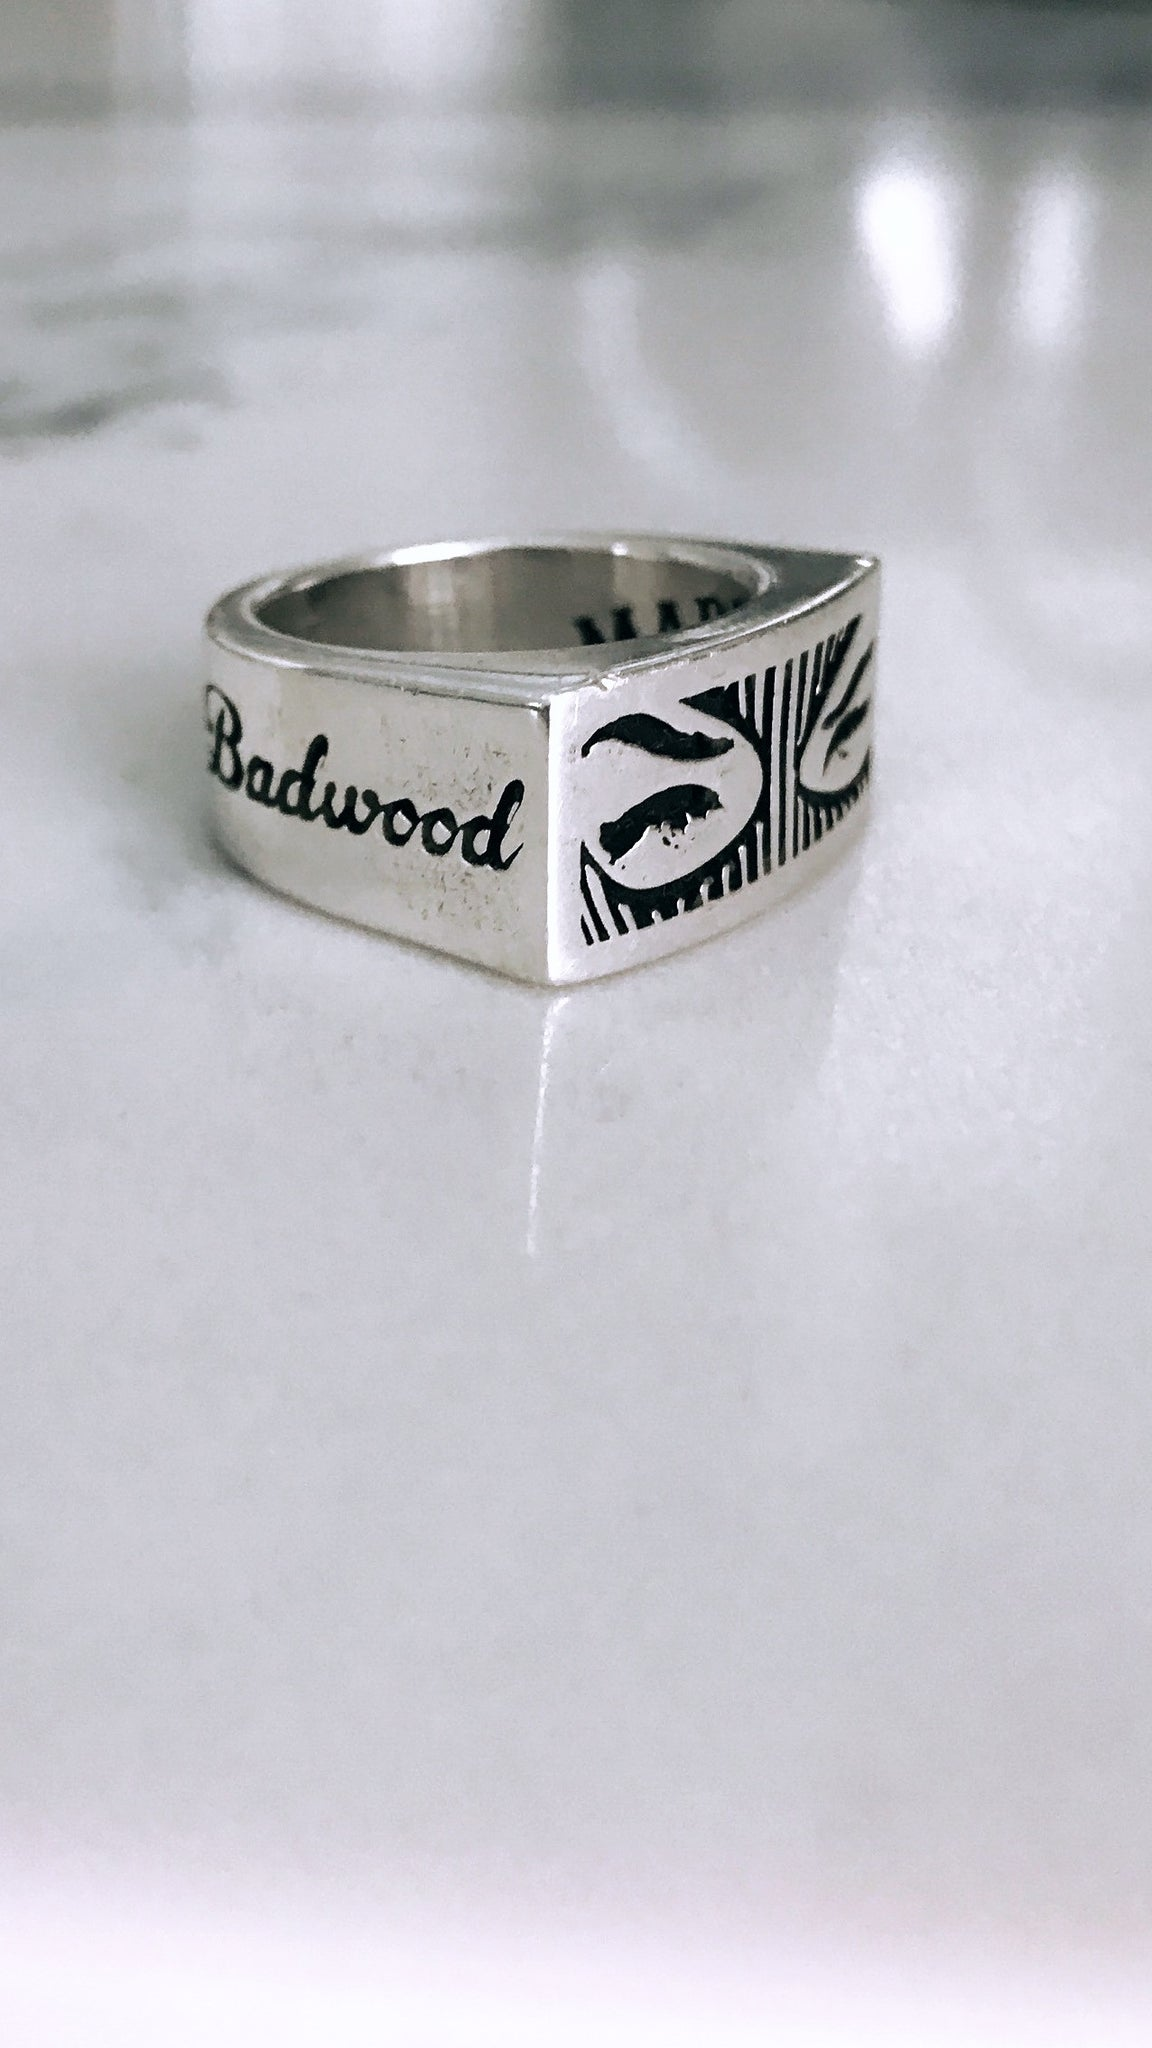 Badwood x SpeakeasyOriginal RING